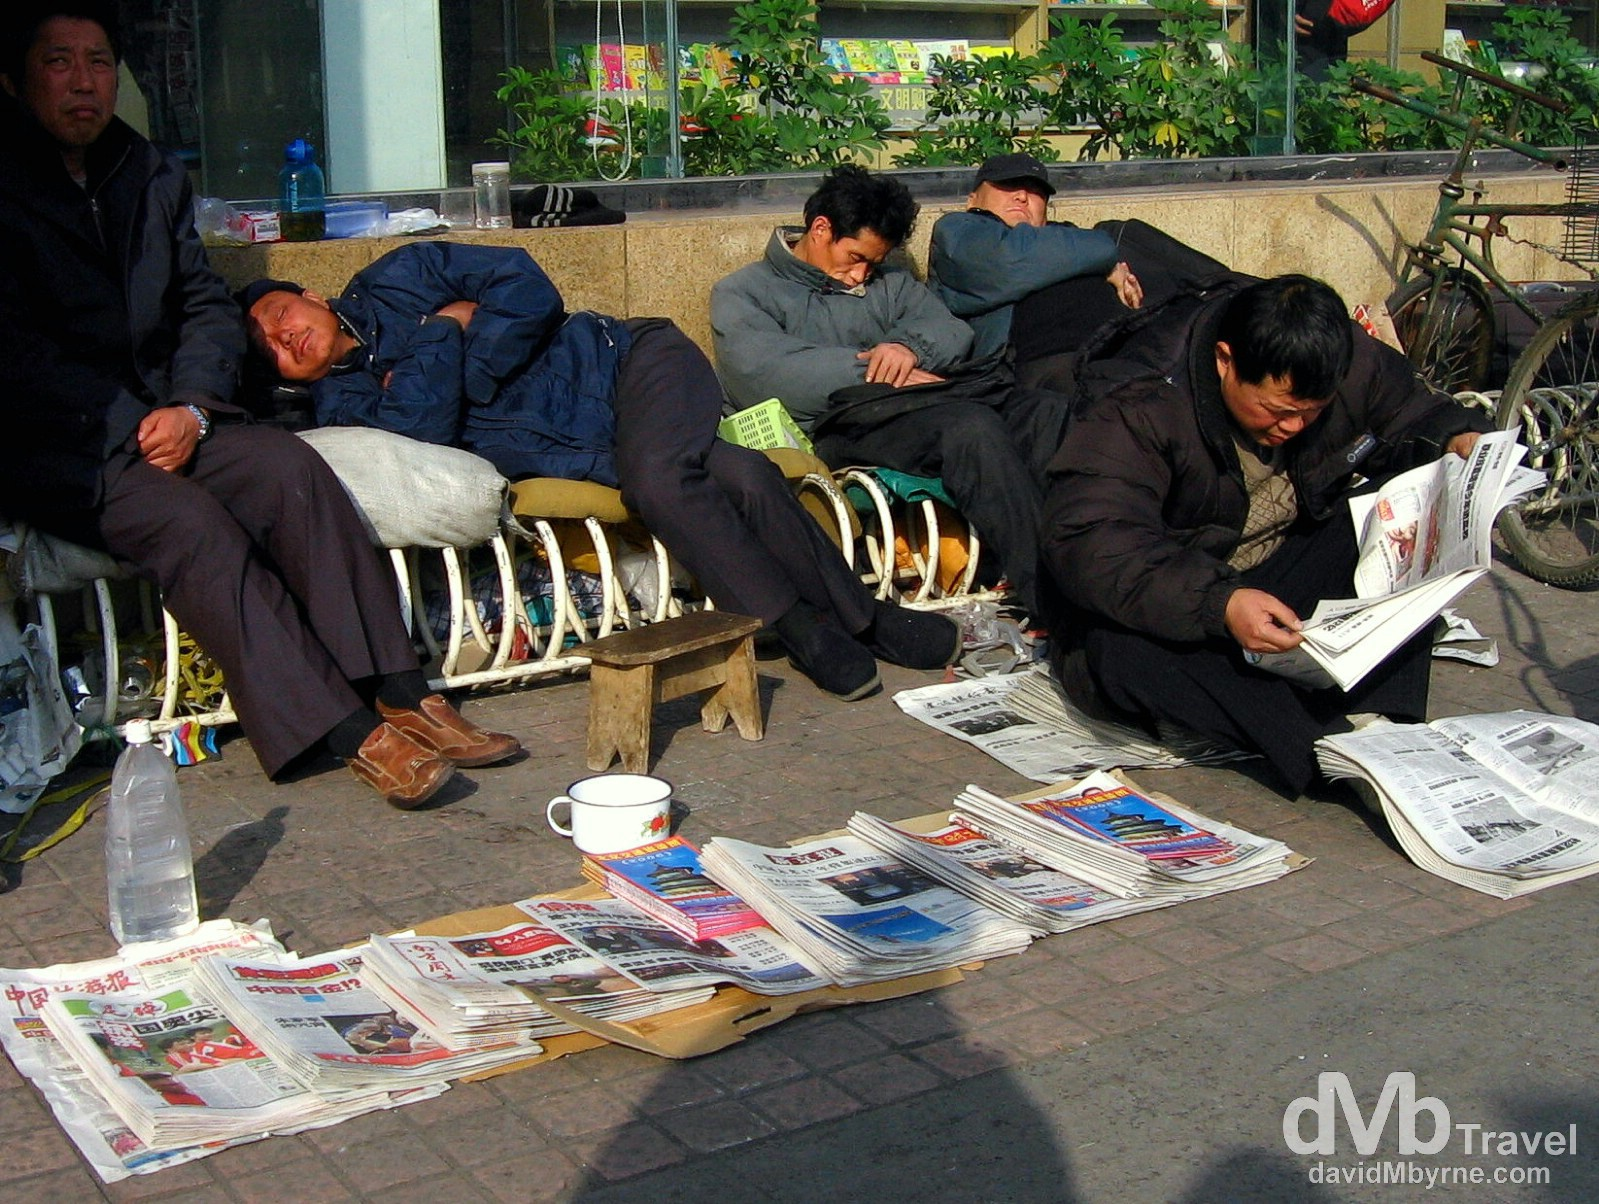 Snoozing on the streets of Beijing, China. February 10. 2006.